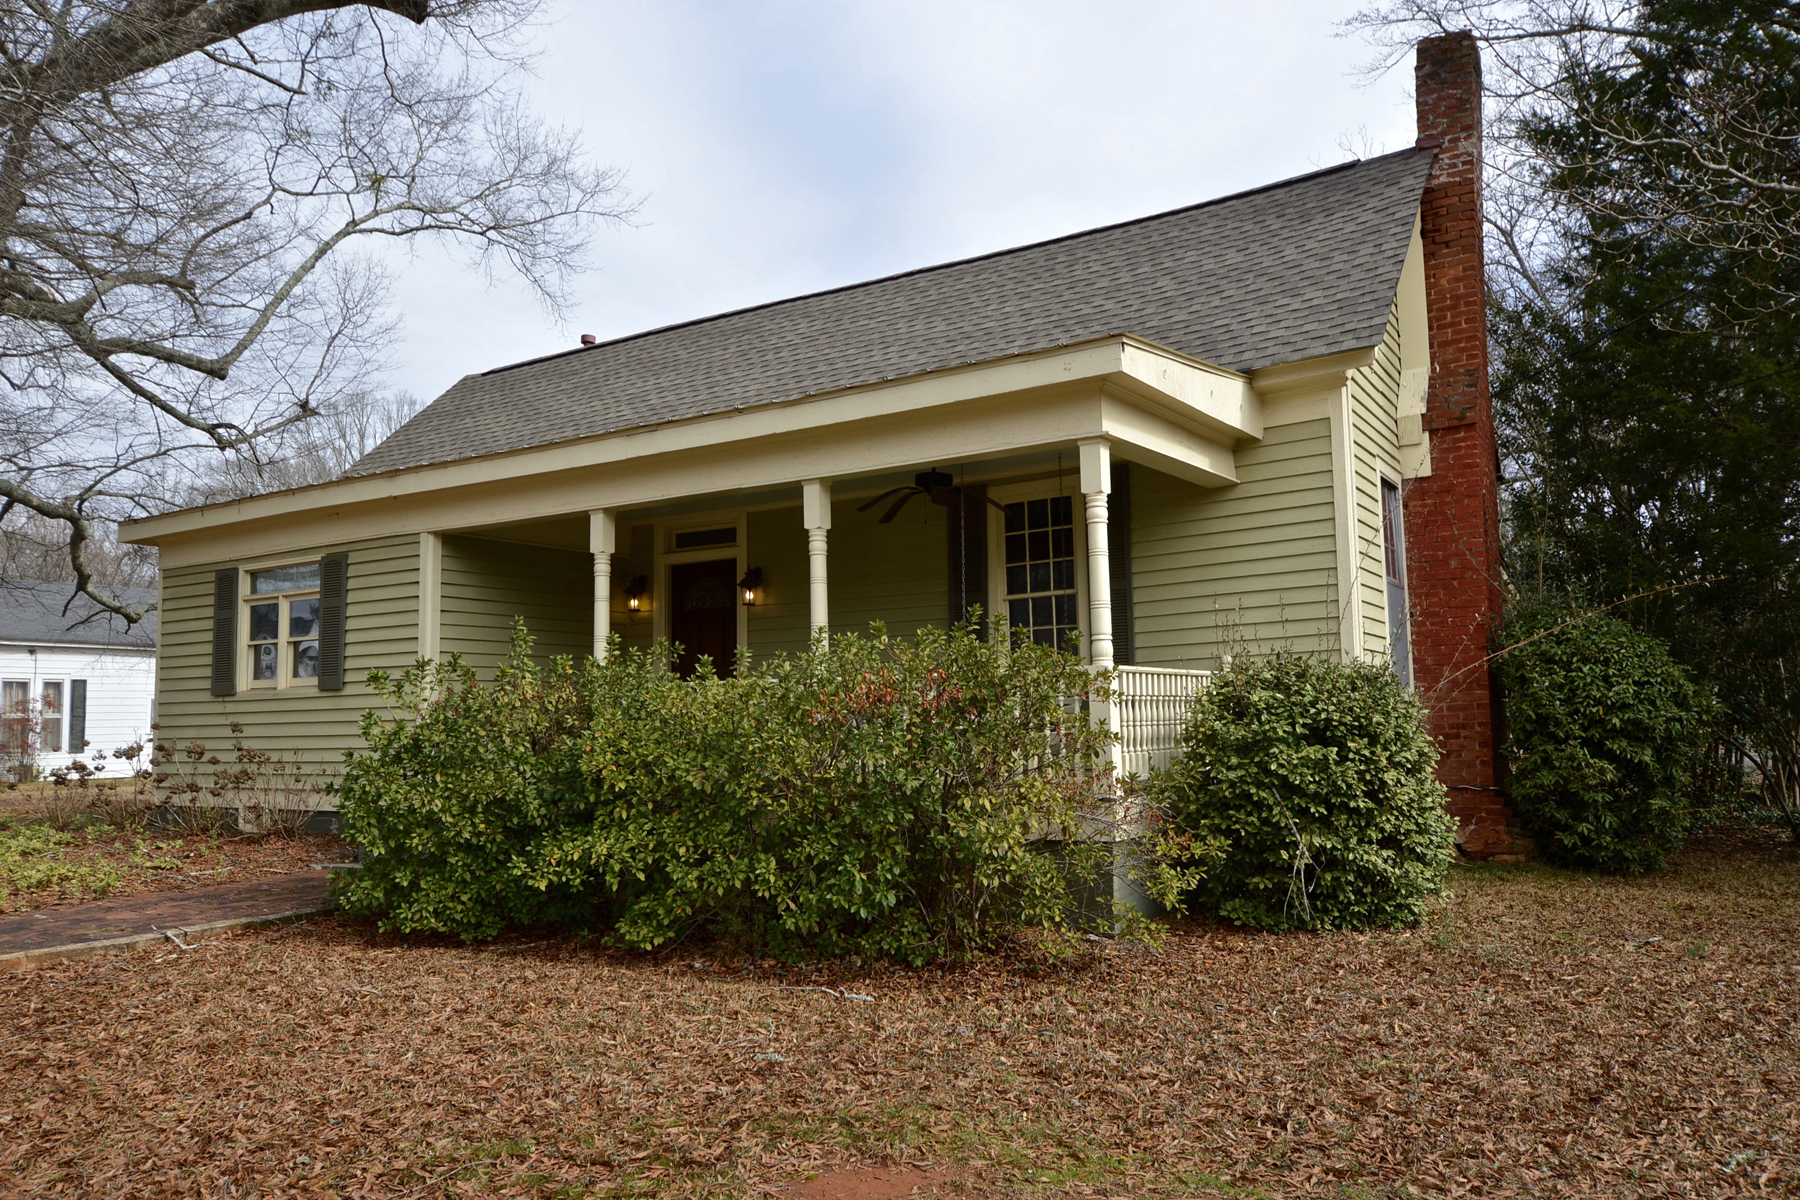 단독 가정 주택 용 매매 에 Charming Historic Home In Downtown Senoia On Beautiful Large Level Lot 471 Pylant Street Senoia, 조지아, 30276 미국